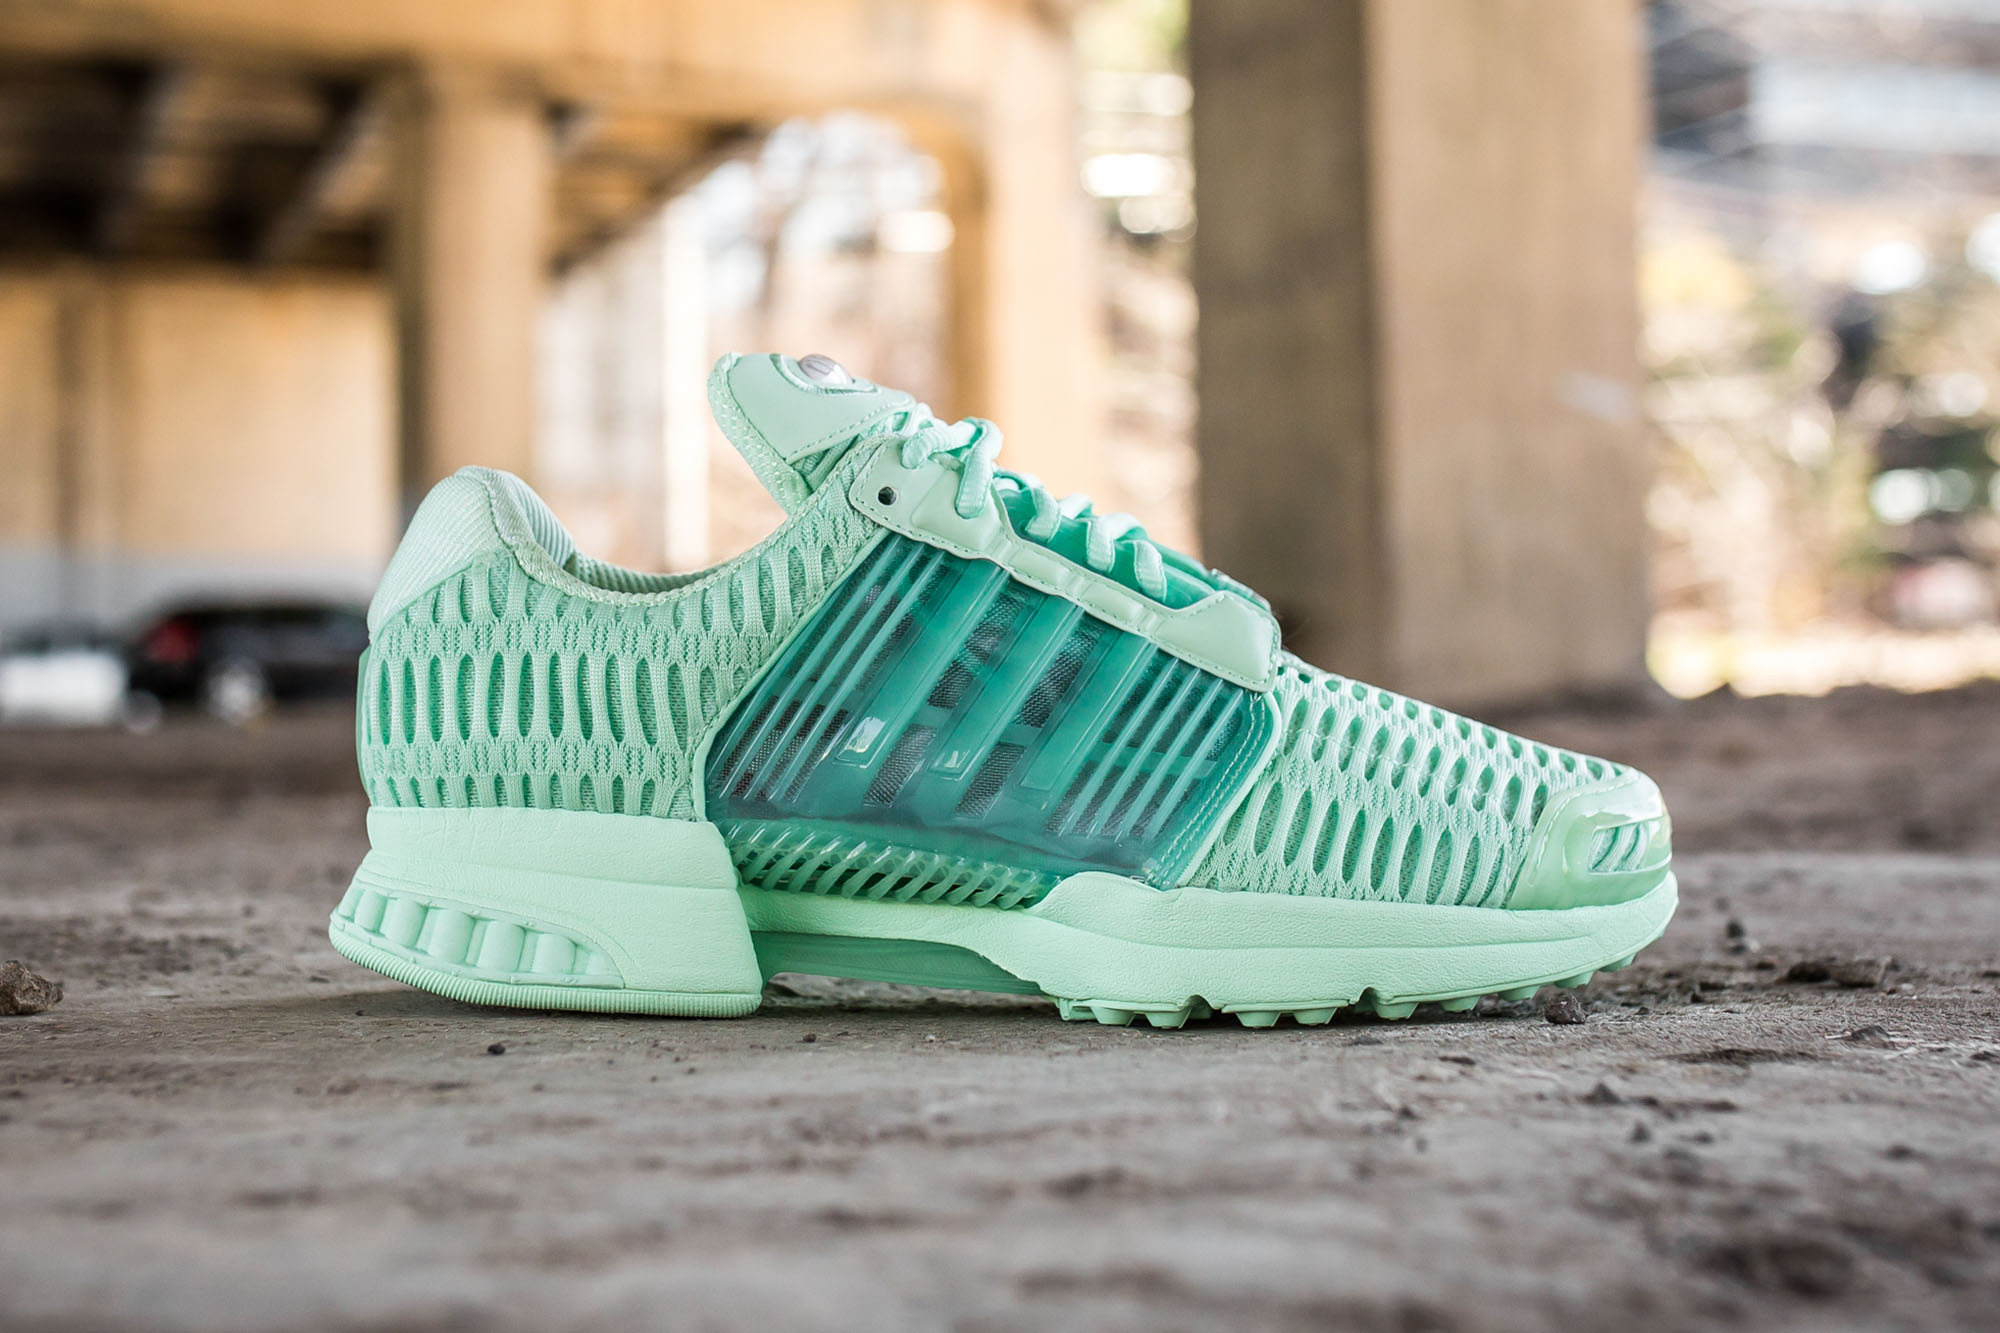 superior quality 85619 b5207 Take a Good Look at the adidas Climacool 1 'Tonal Pack ...